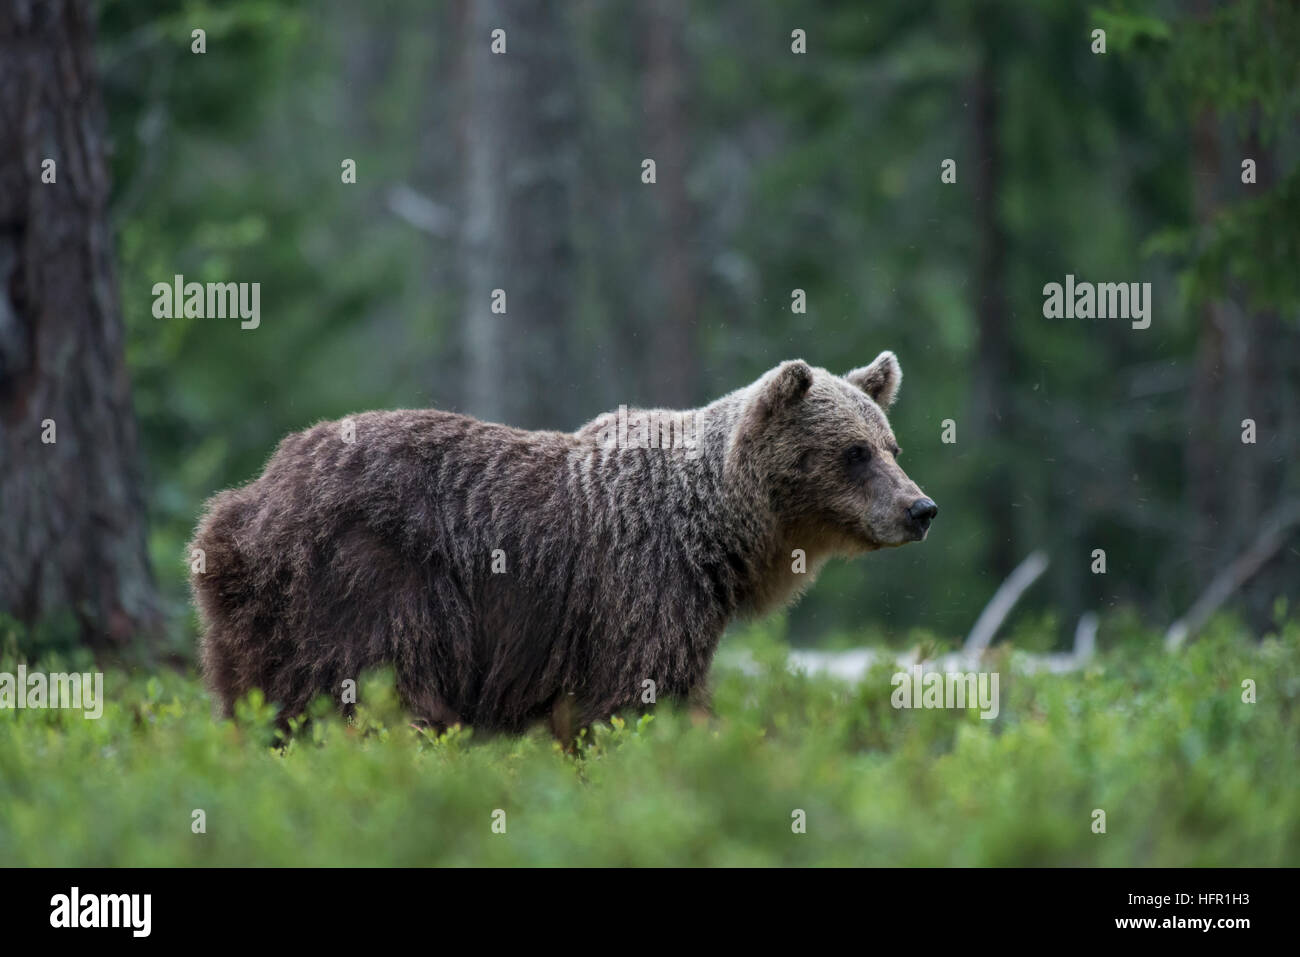 Brown bear in the taiga forest - Stock Image